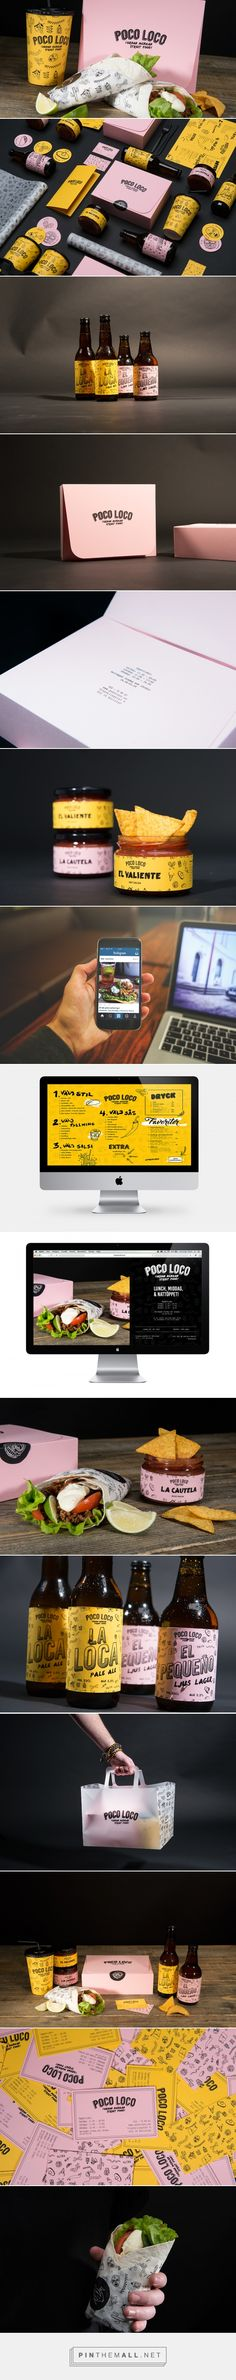 Poco Loco — The Dieline - Branding. Urban Mexican street food in Sweden, of all places. Teddy Saxfors, Marie Stridh, and Filip Sjöholm developed a new identity for their products as well